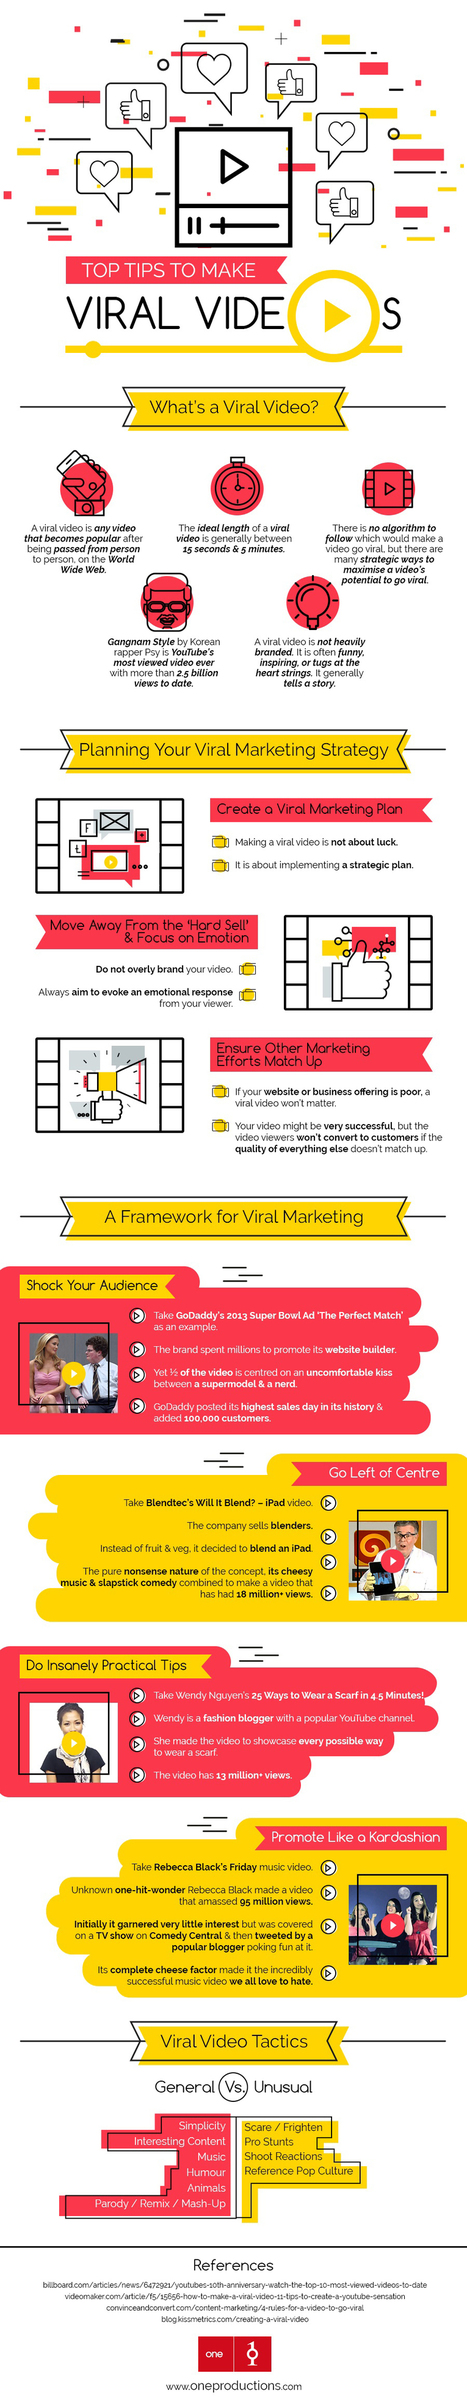 Use Video to Maximize Content Marketing Efforts #Infographic | Digital Brand Marketing | Scoop.it